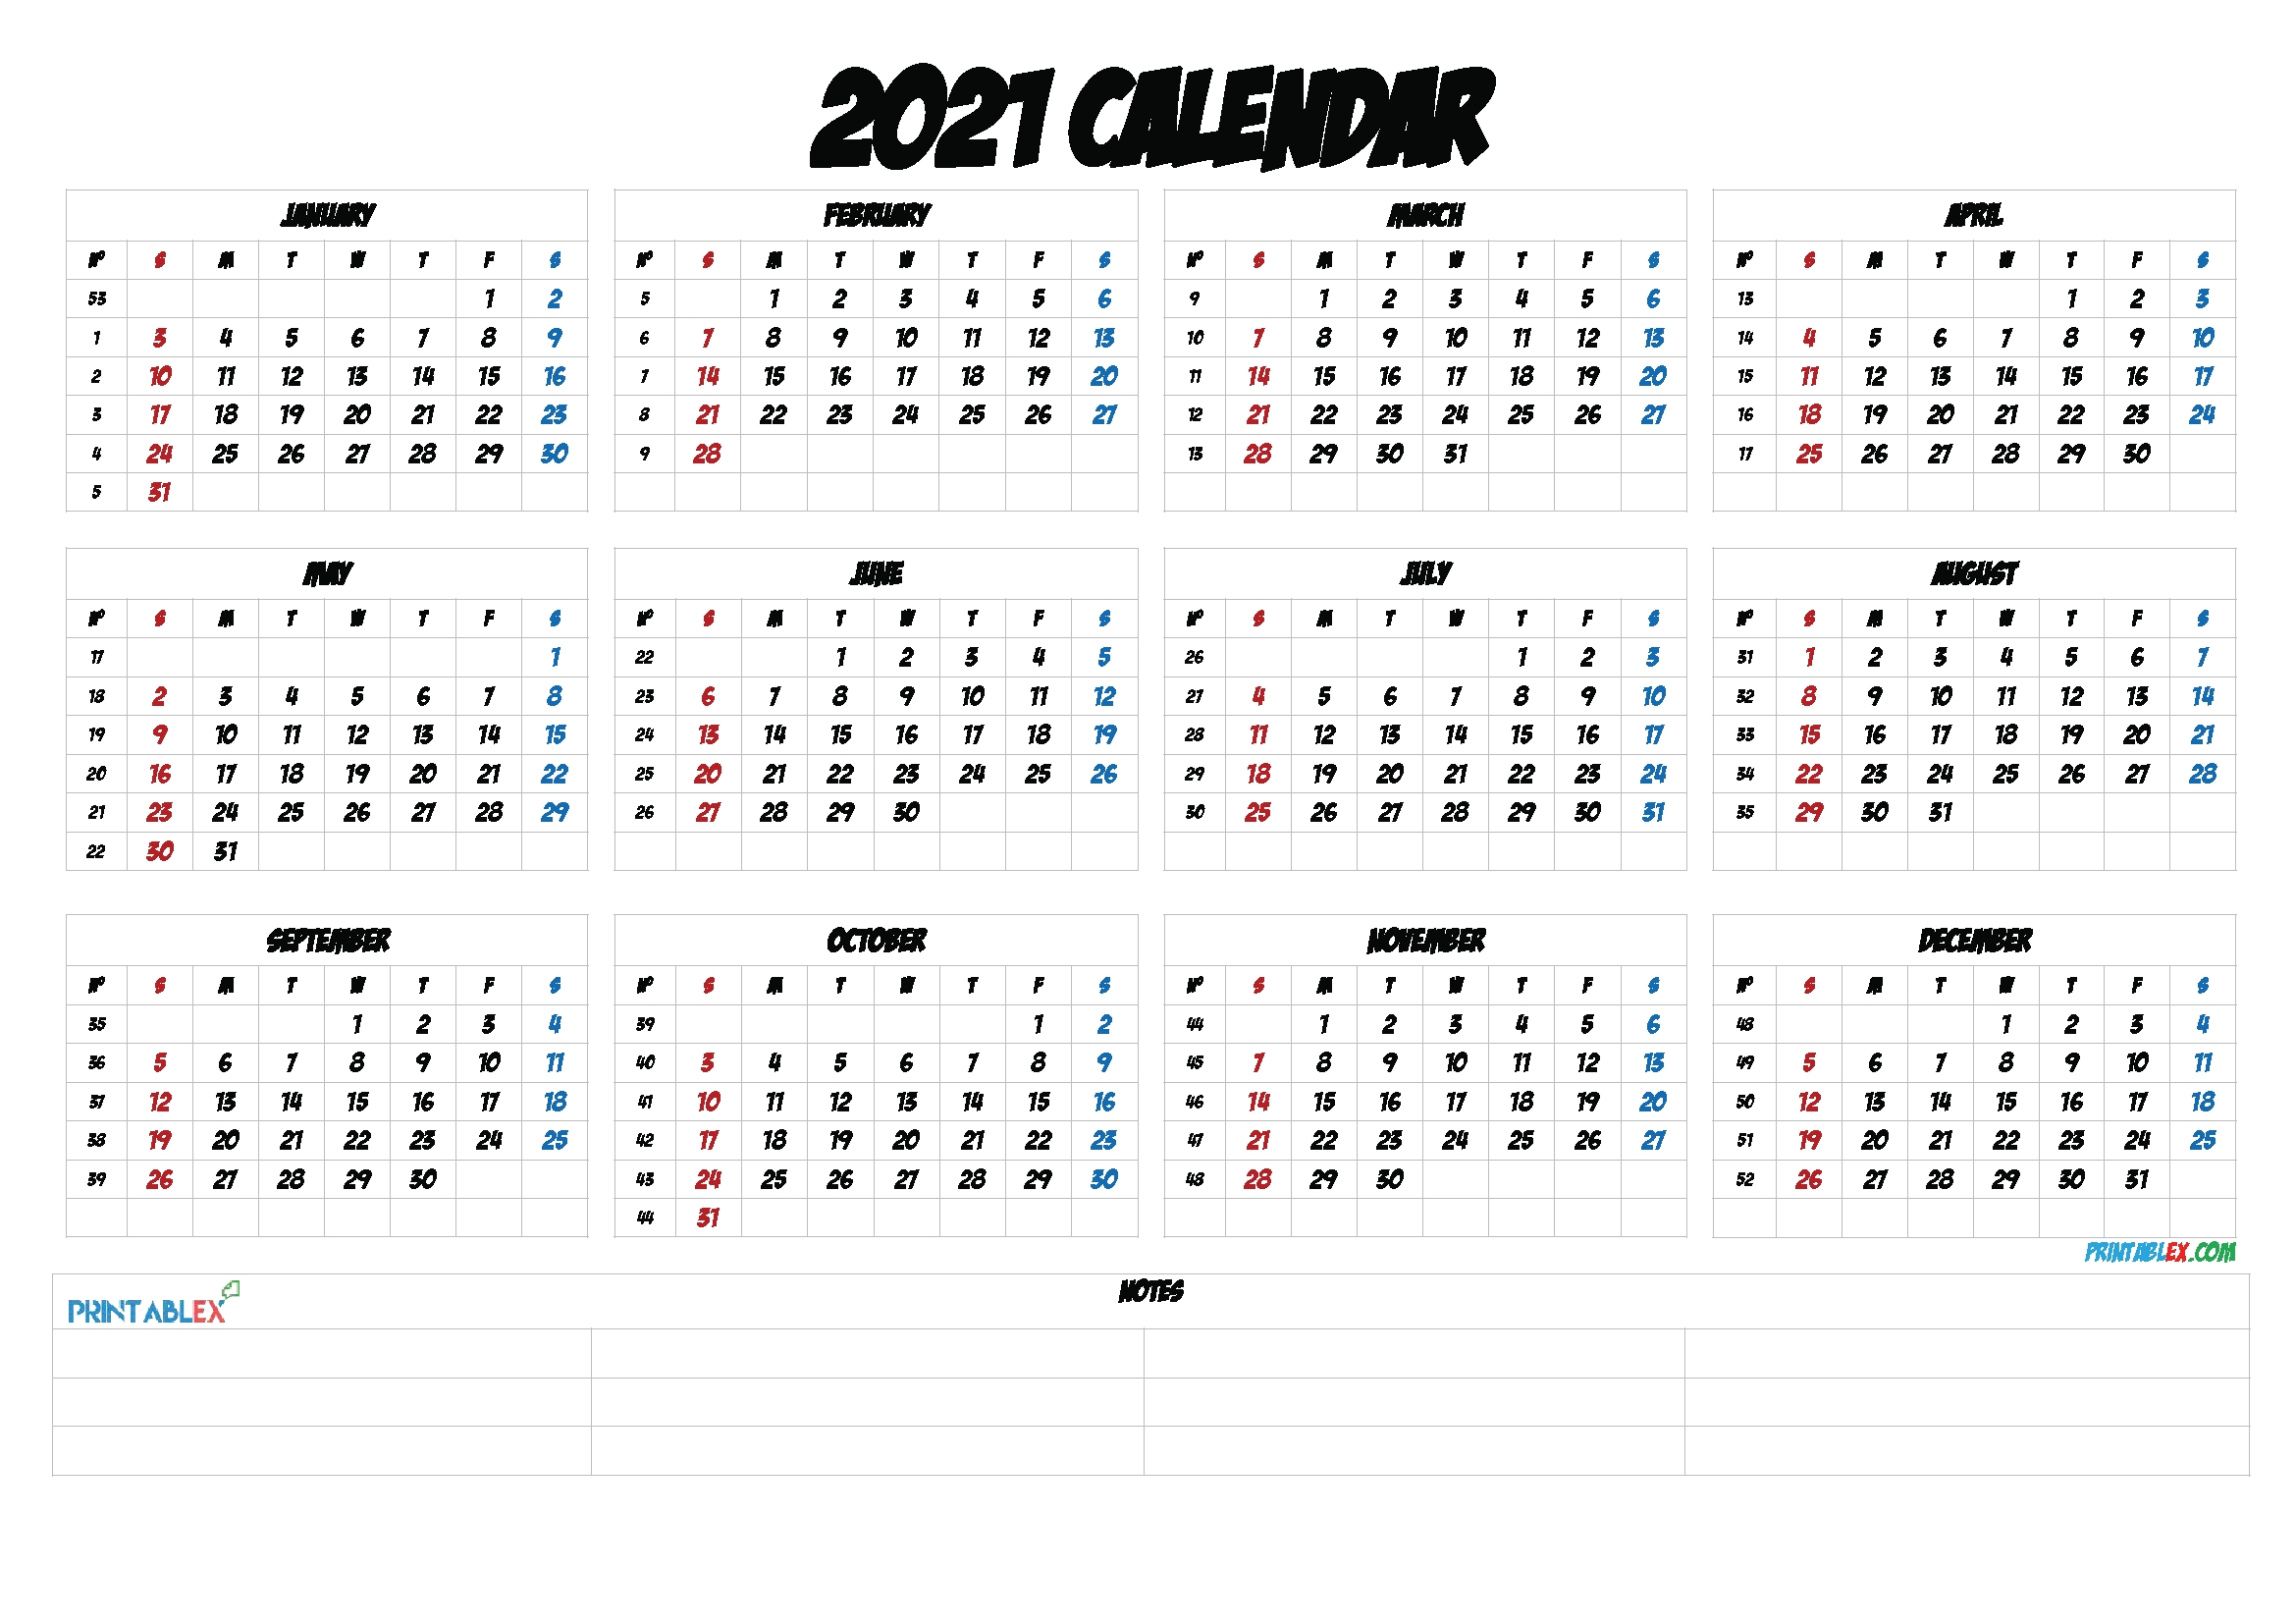 2021 Calendar With Week Numbers Printable with Calendar 2021 Brunei For Print Photo